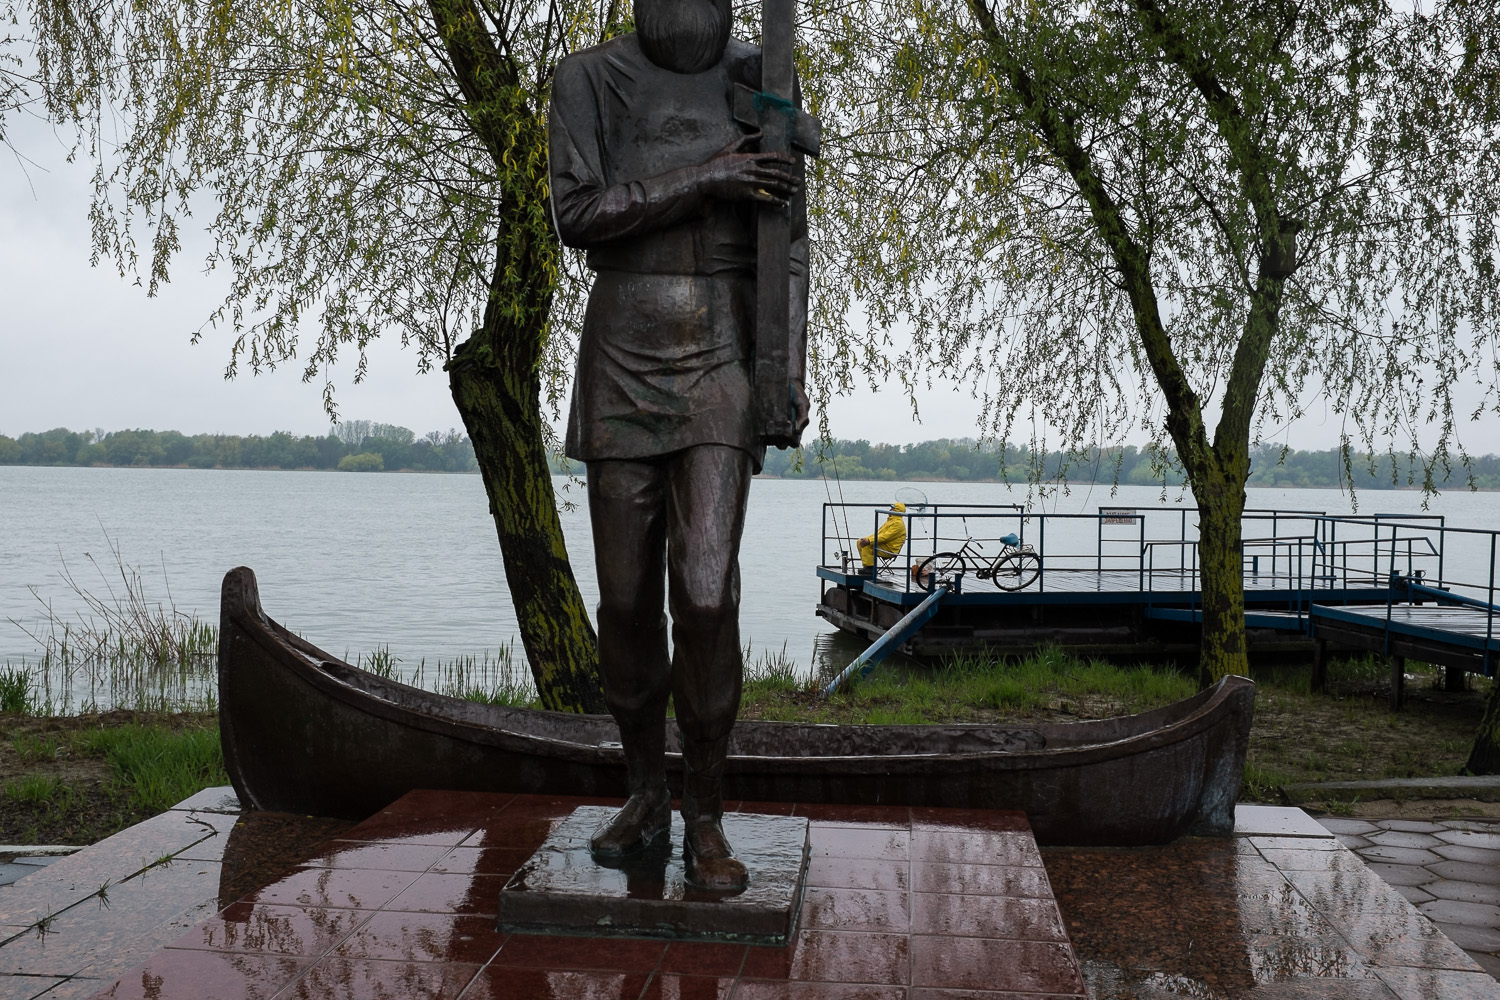 A man fishes in the Danube at Vilkovo near a statue commemorating early Lipovan settlers to the region. The Lipovans - Orthodox Old Believers - came to this corner of Ukraine after the schism of the Russian Orthodox Church, caused by the reforms of Patriarch Nikon in 1654.